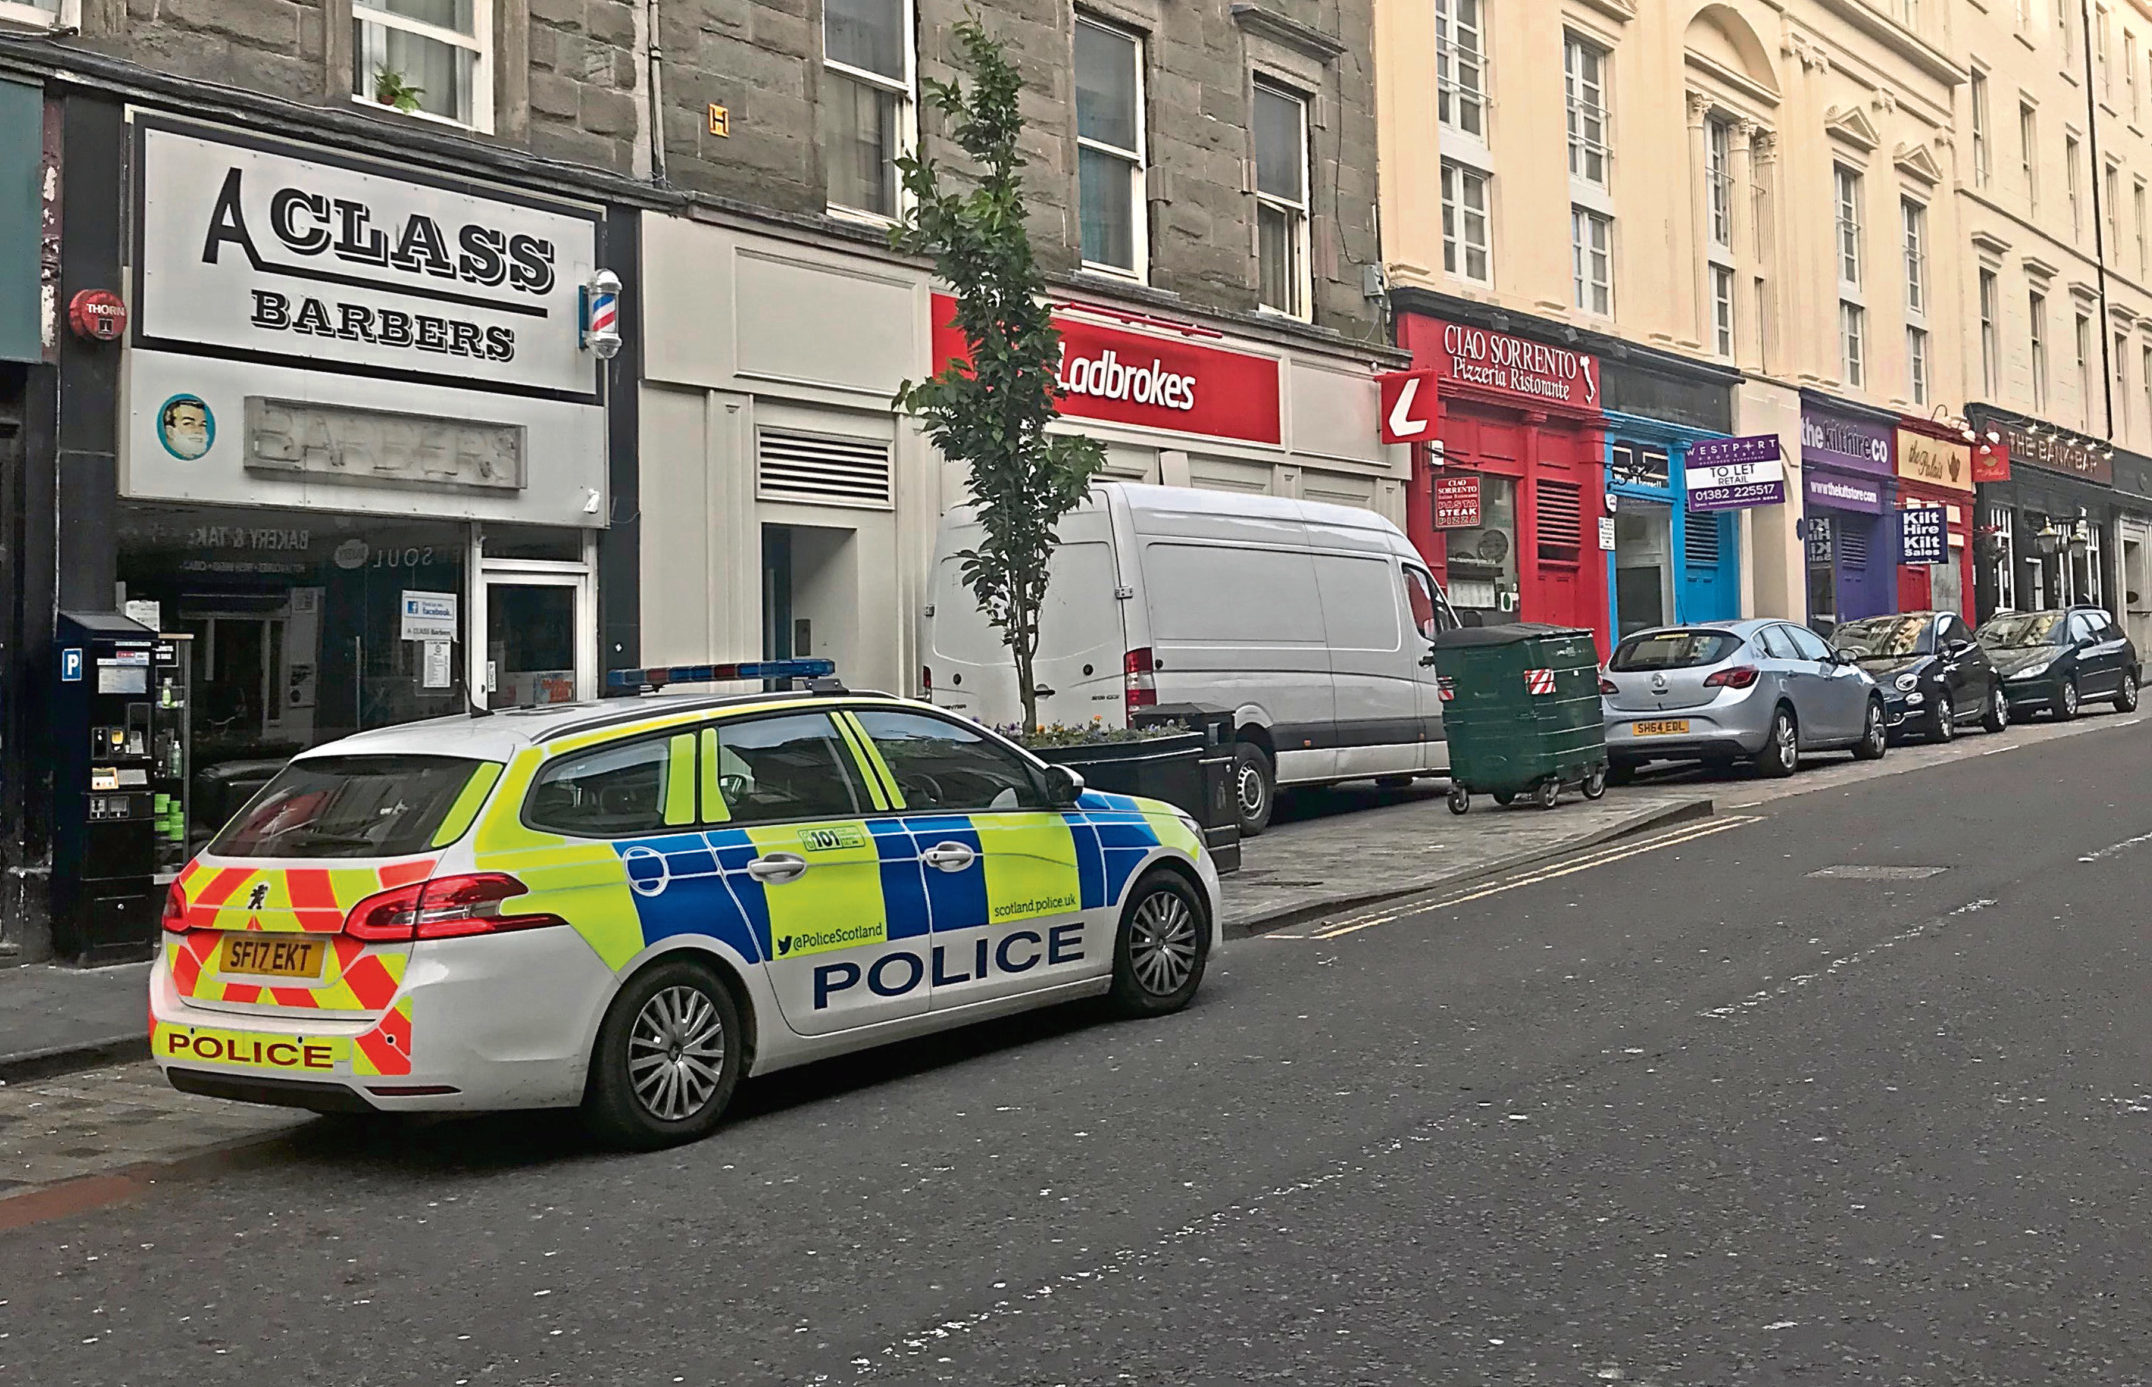 Police at the scene of the incident at Ladbrokes, Union Street.